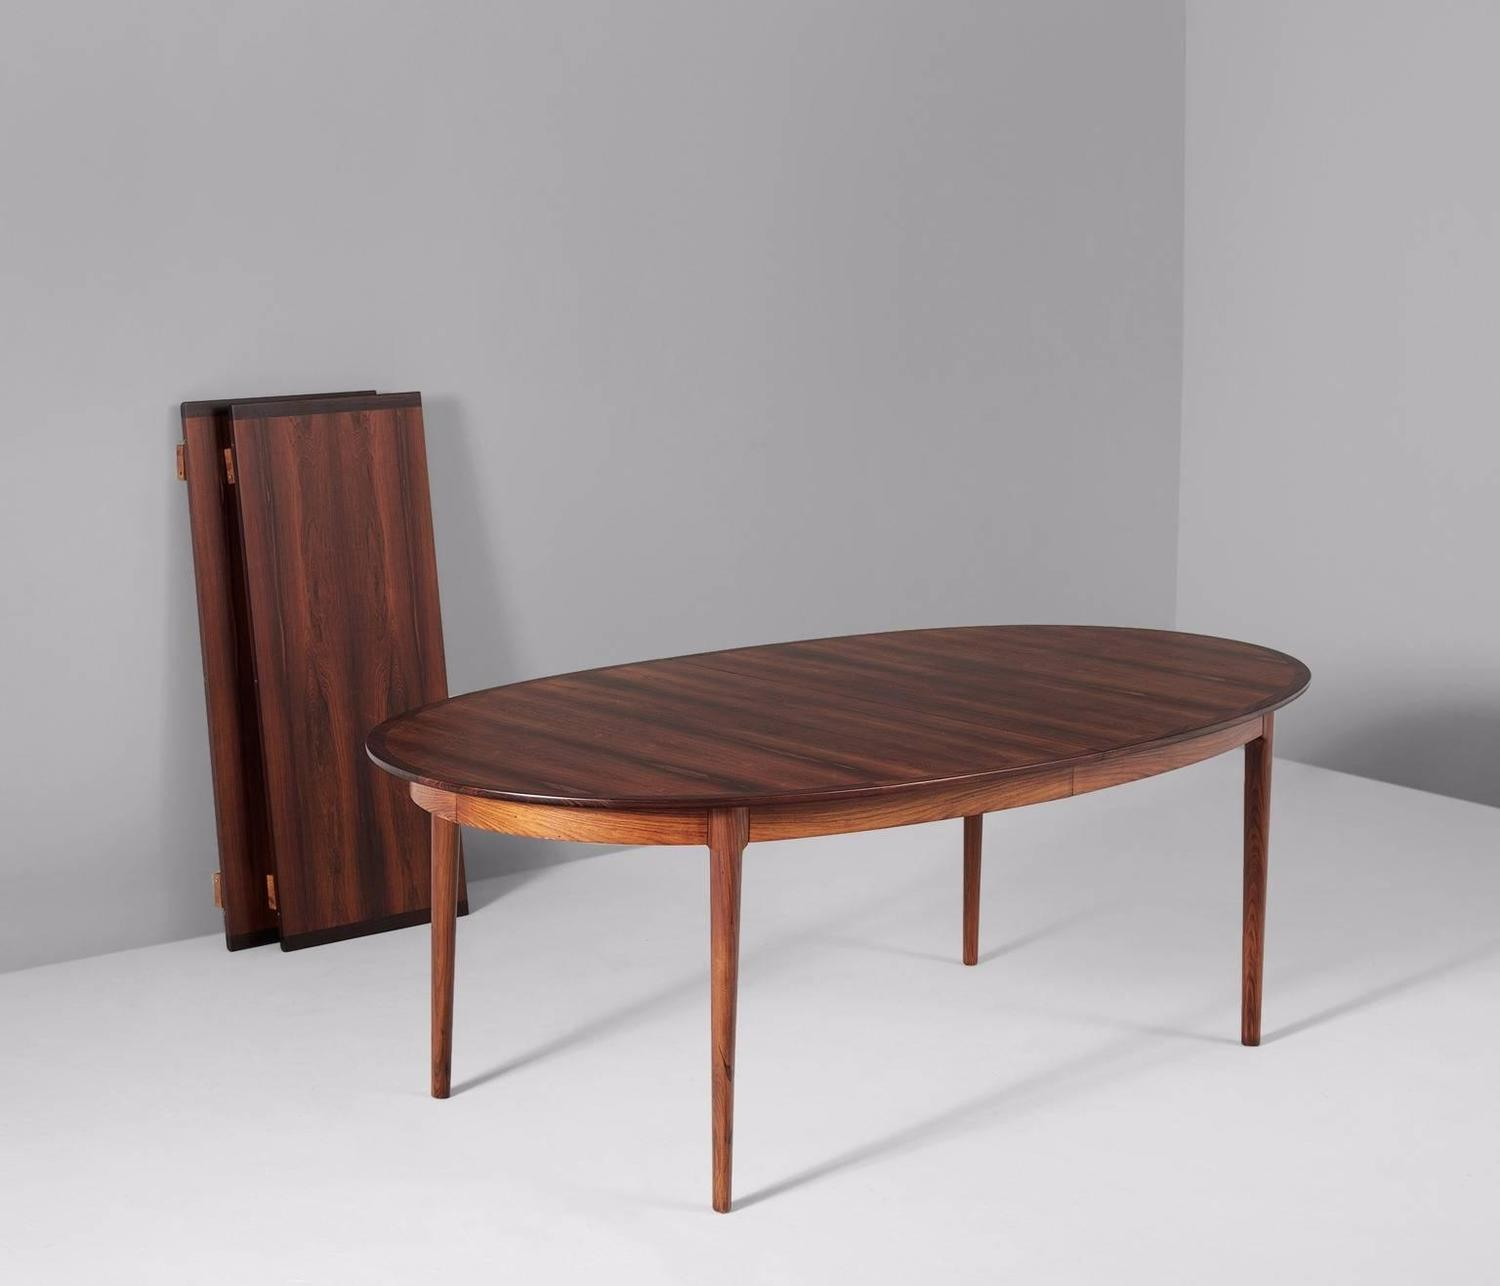 10 ft extendable large rosewood table for sale at 1stdibs for 10 ft dining room table